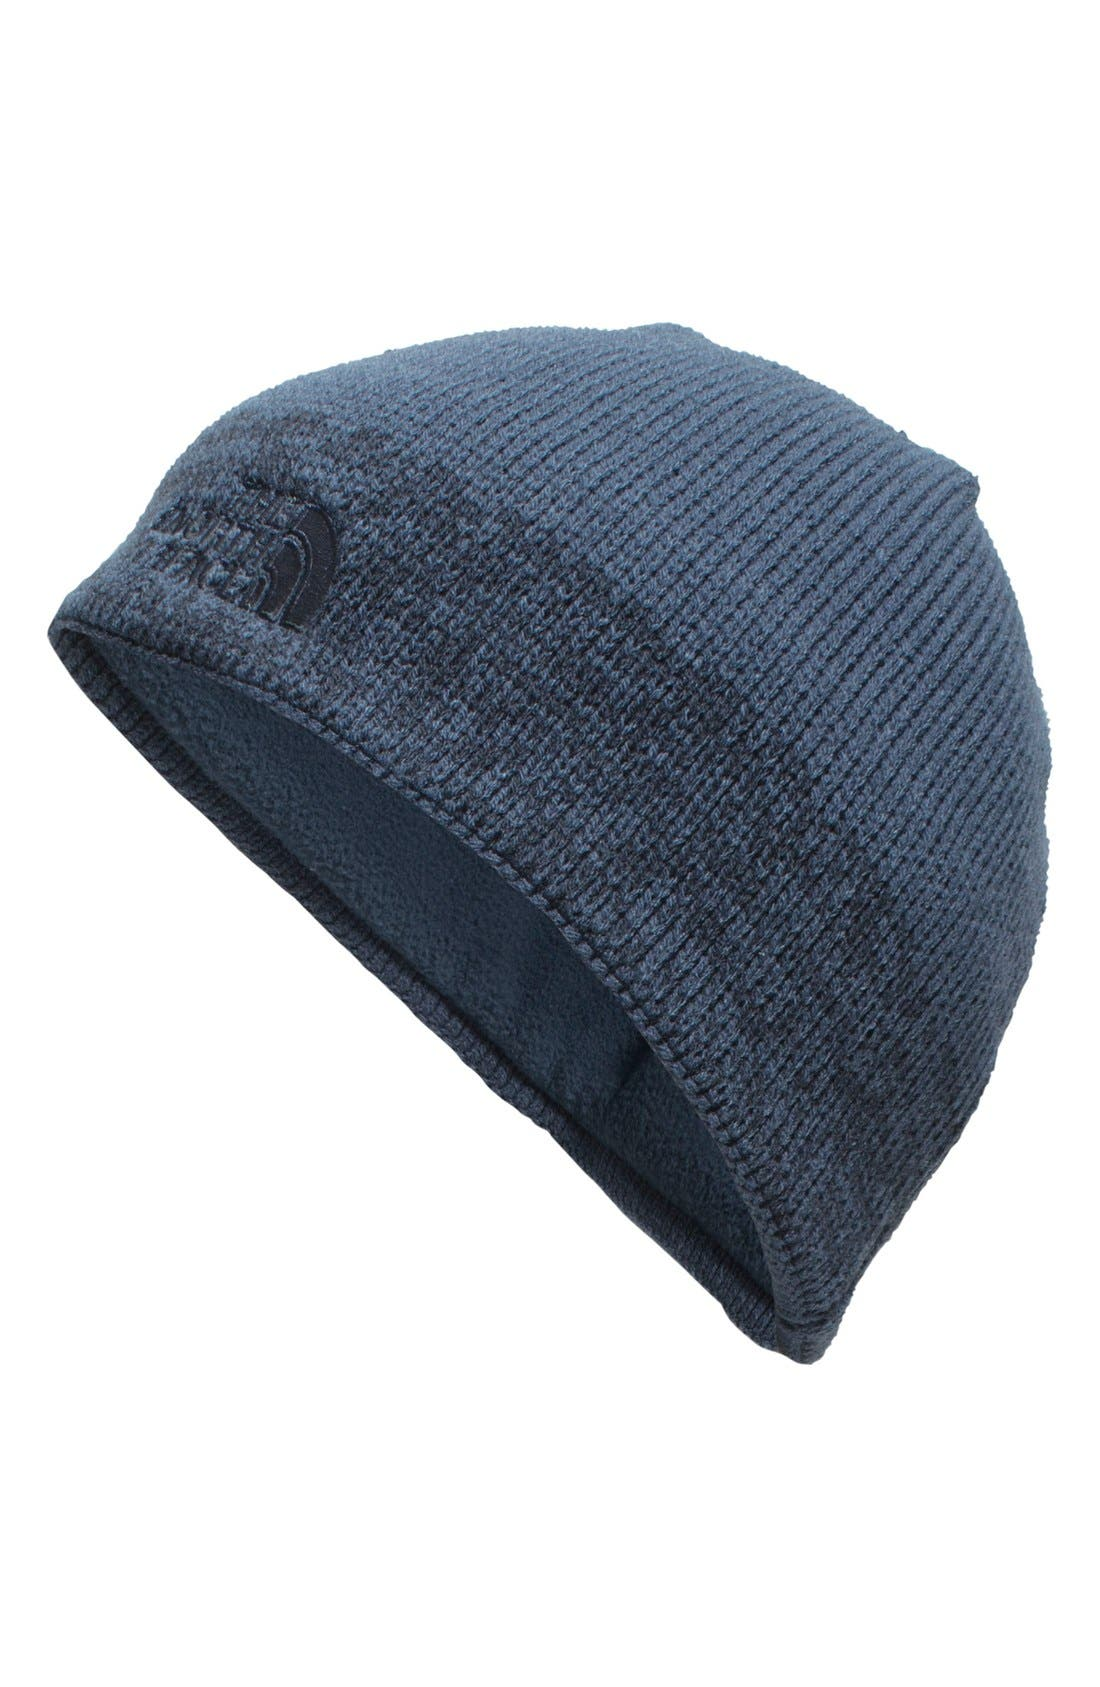 'Bones' Microfleece Beanie,                             Main thumbnail 13, color,